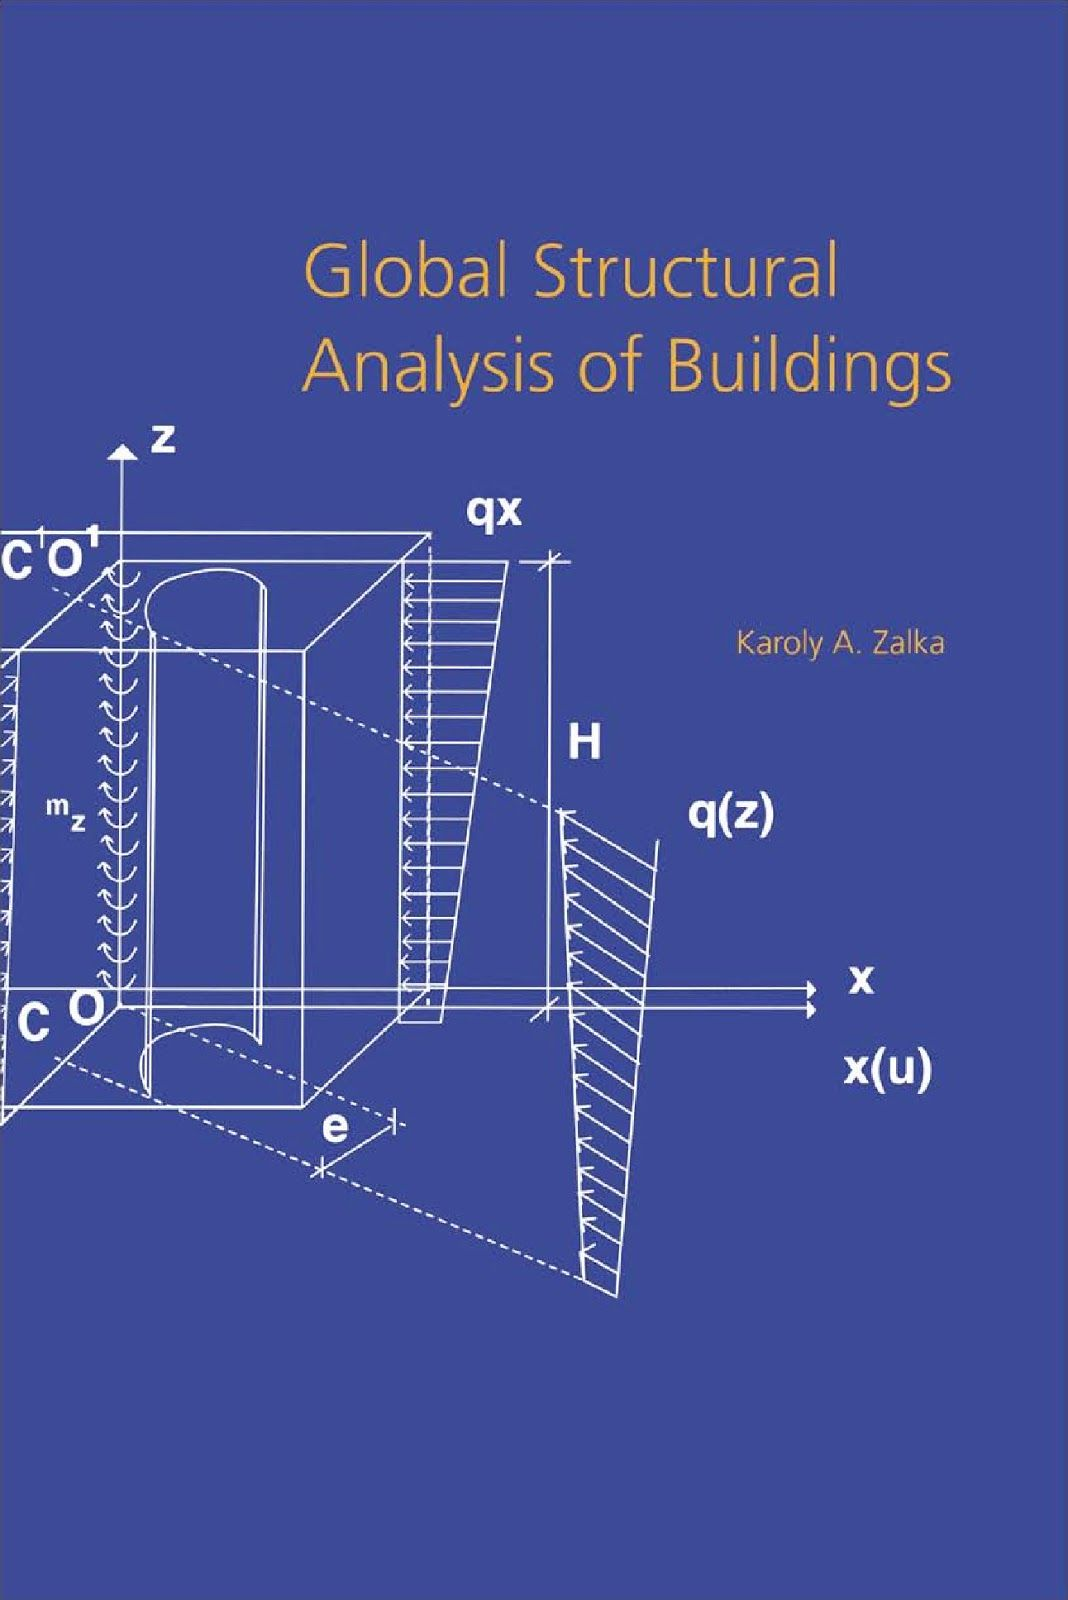 Global Structural Analysis of Buildings in 2020